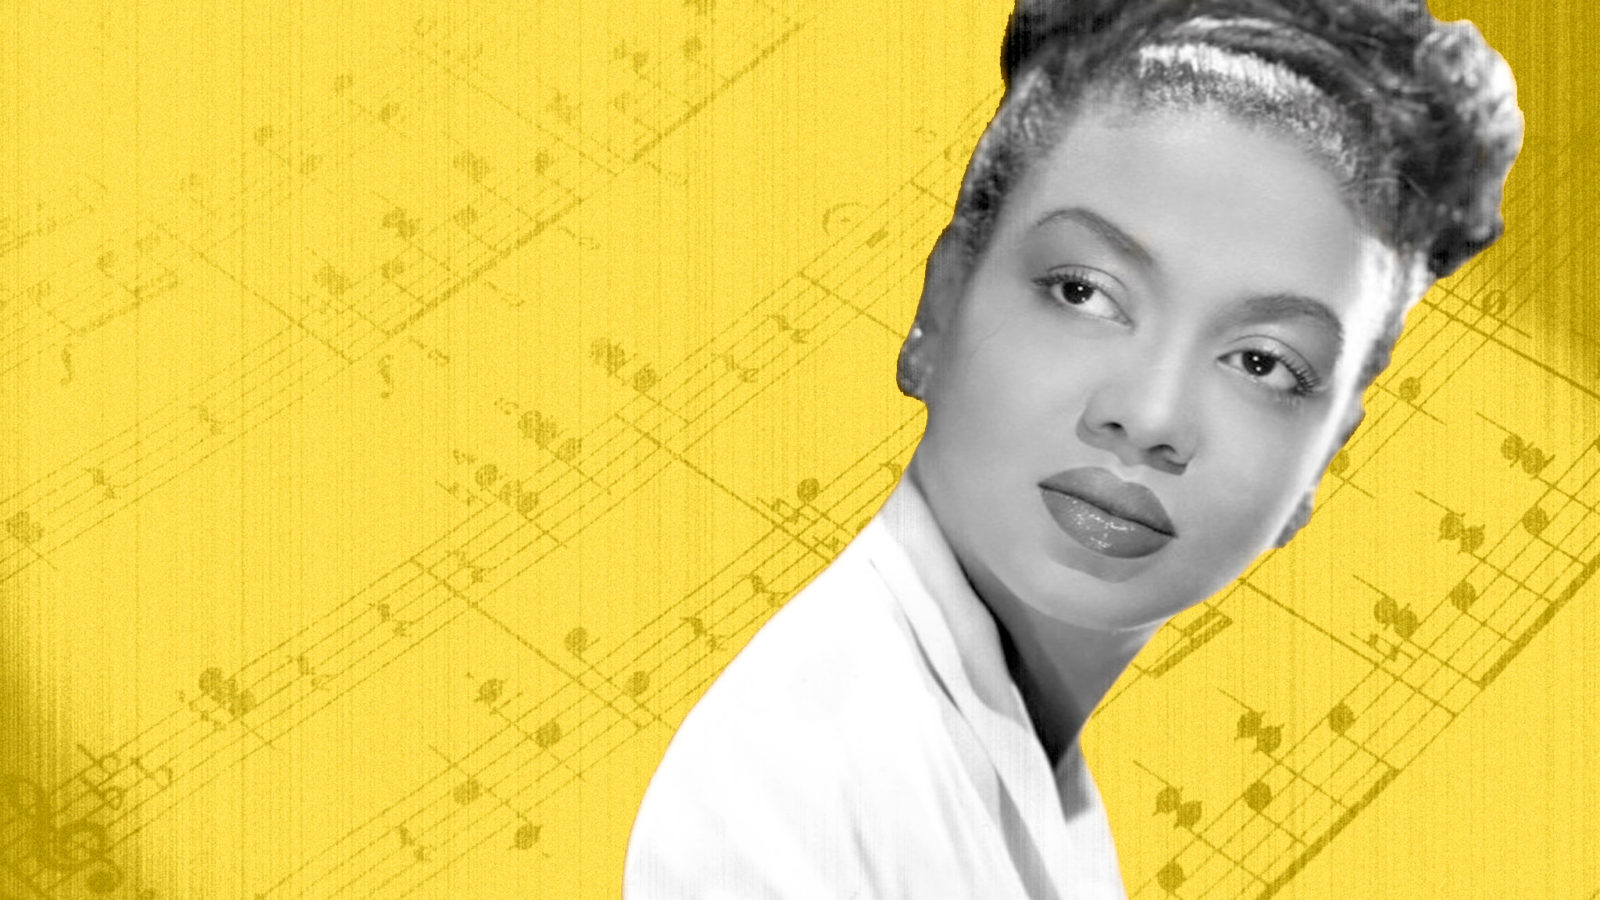 This Black Woman Was Once the Biggest Star in Jazz. Here's Why You've Never Heard of Her.